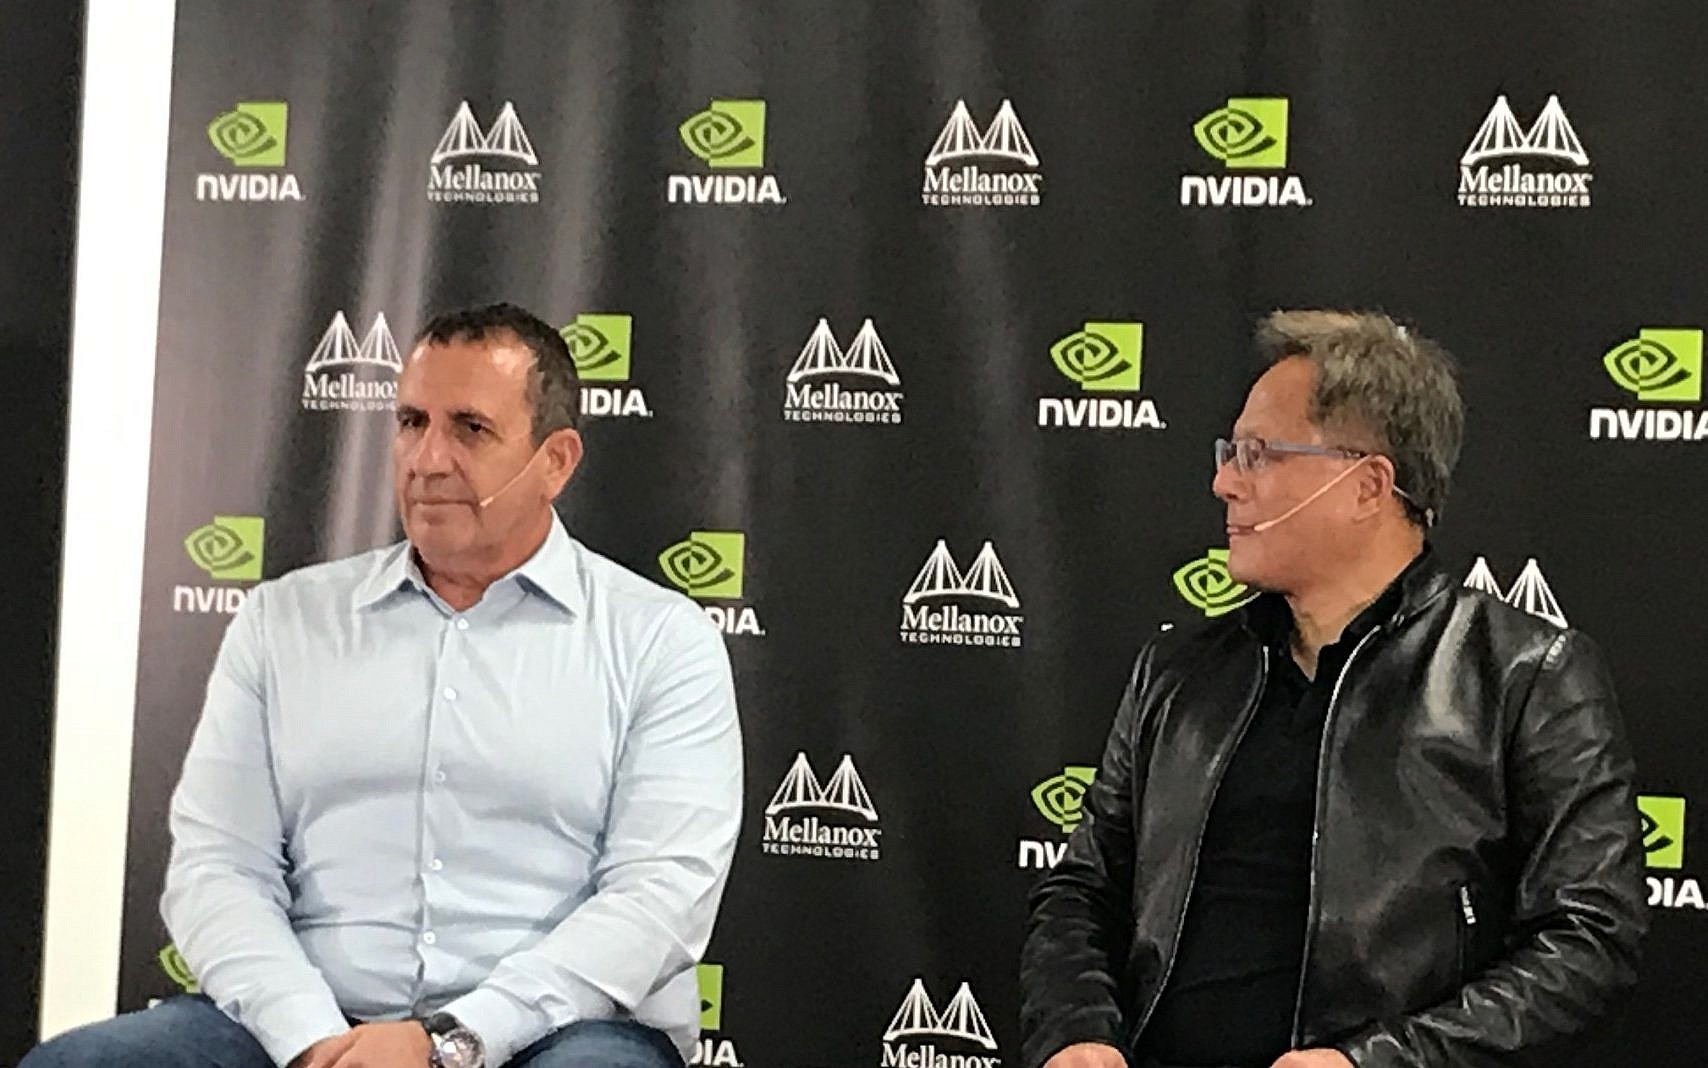 Mellanox to stay independent within Nvidia with Waldman at its head